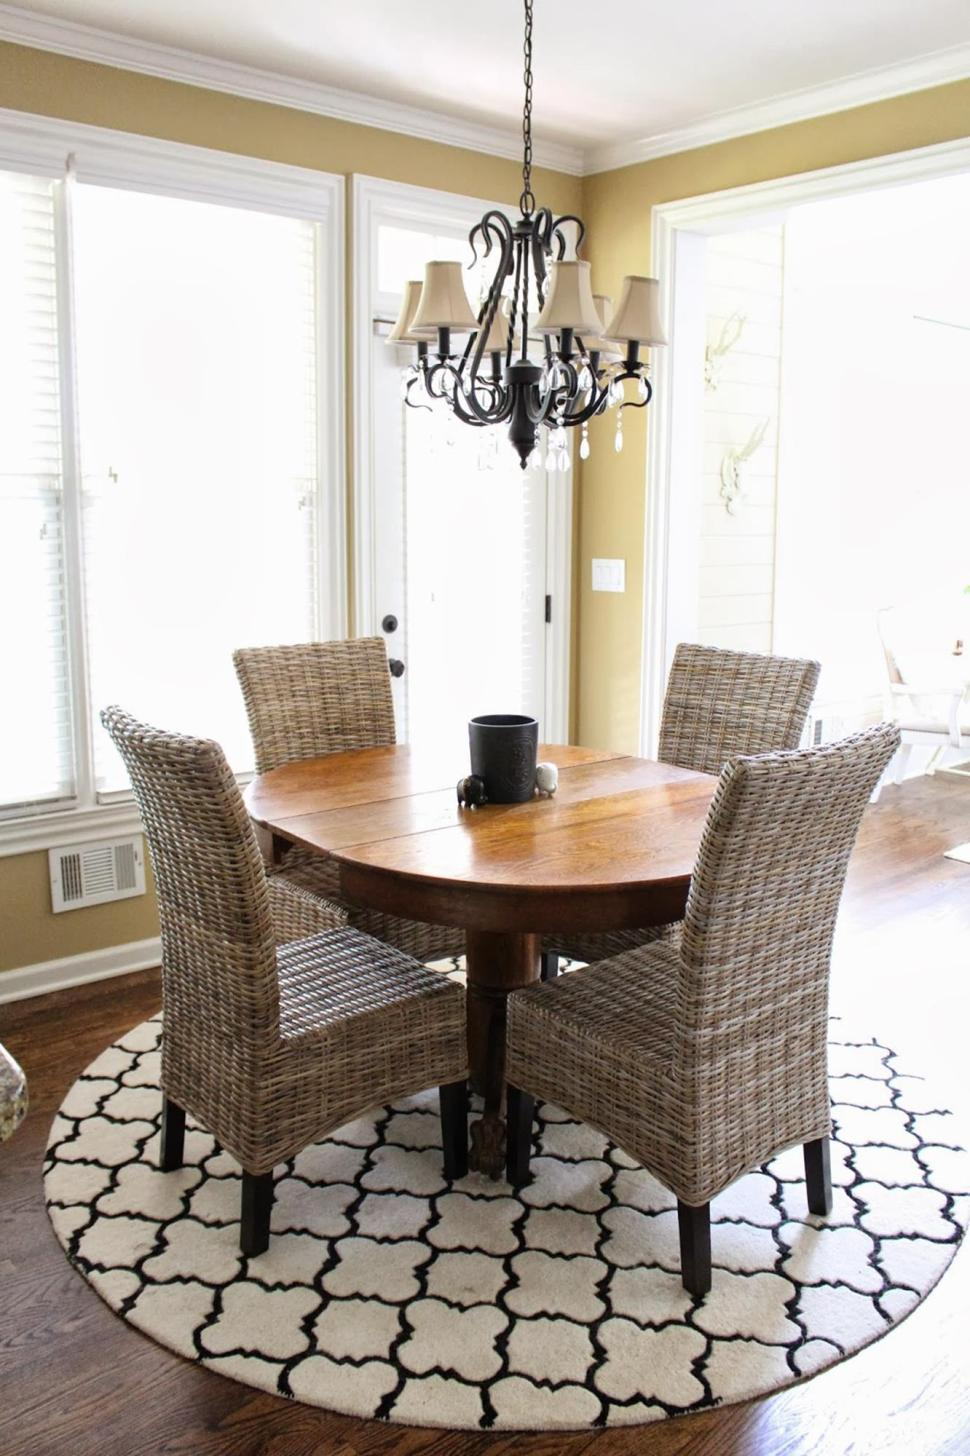 Best Cheap Rugs for Under Kitchen Table 10